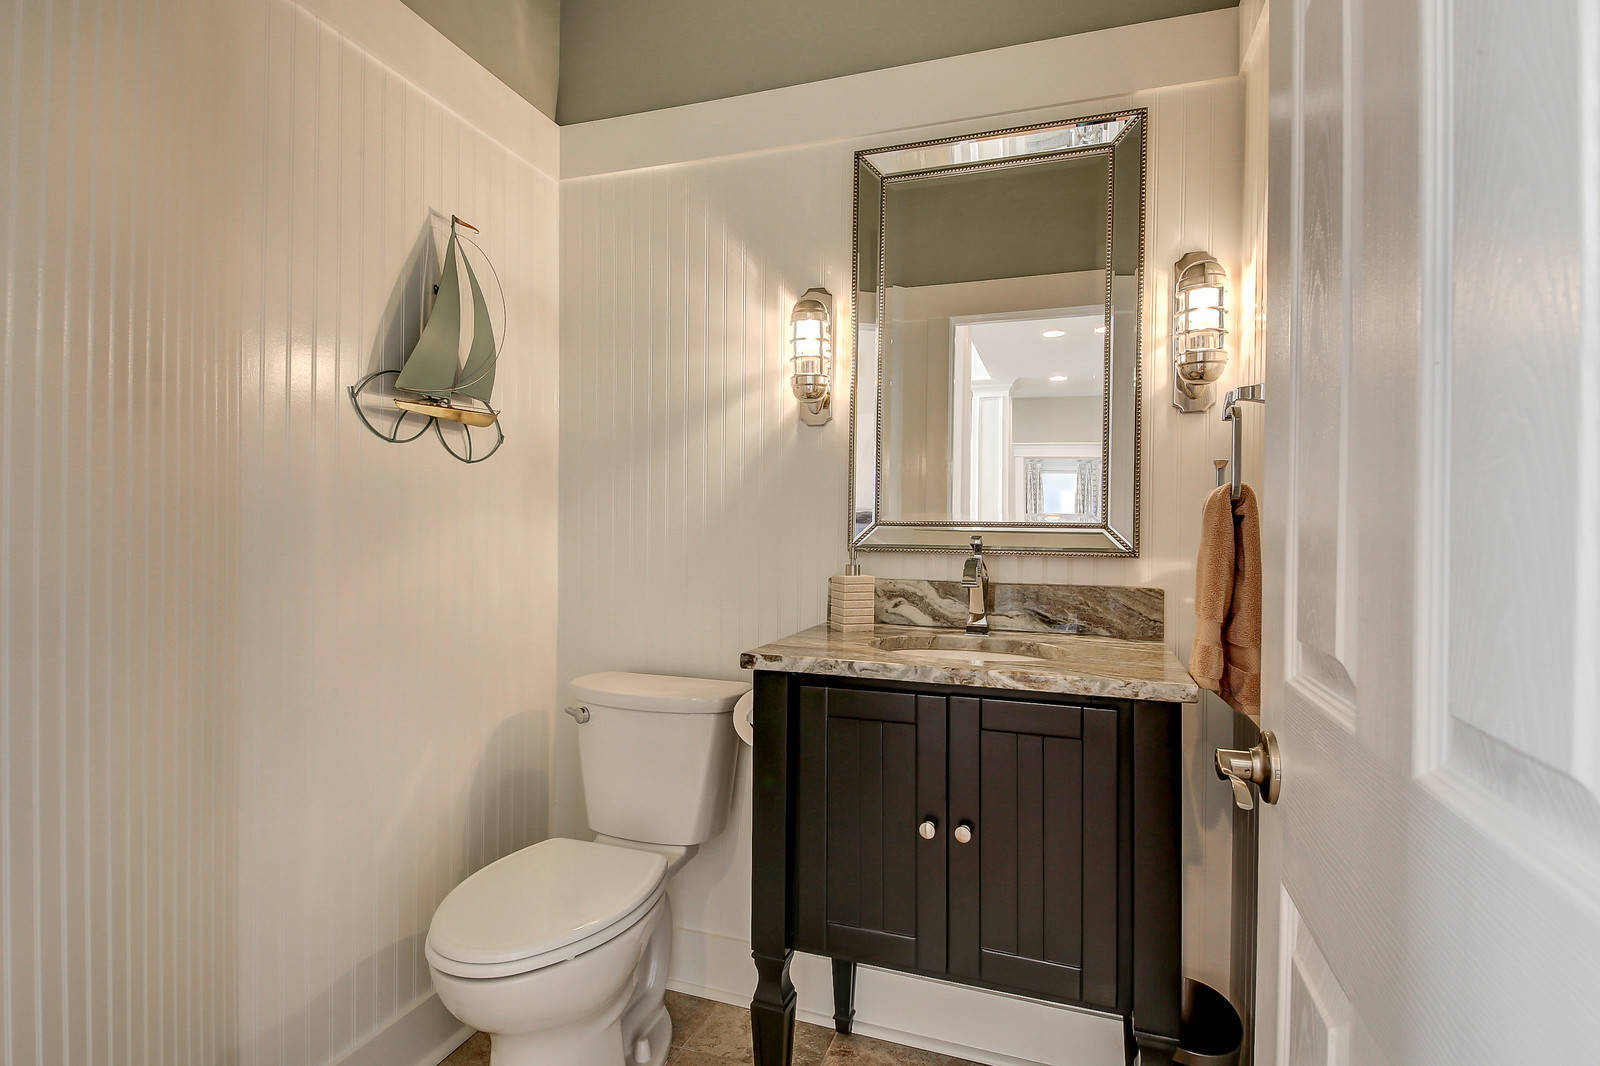 75 Beautiful Brown Powder Room With Granite Countertops Pictures Ideas December 2020 Houzz